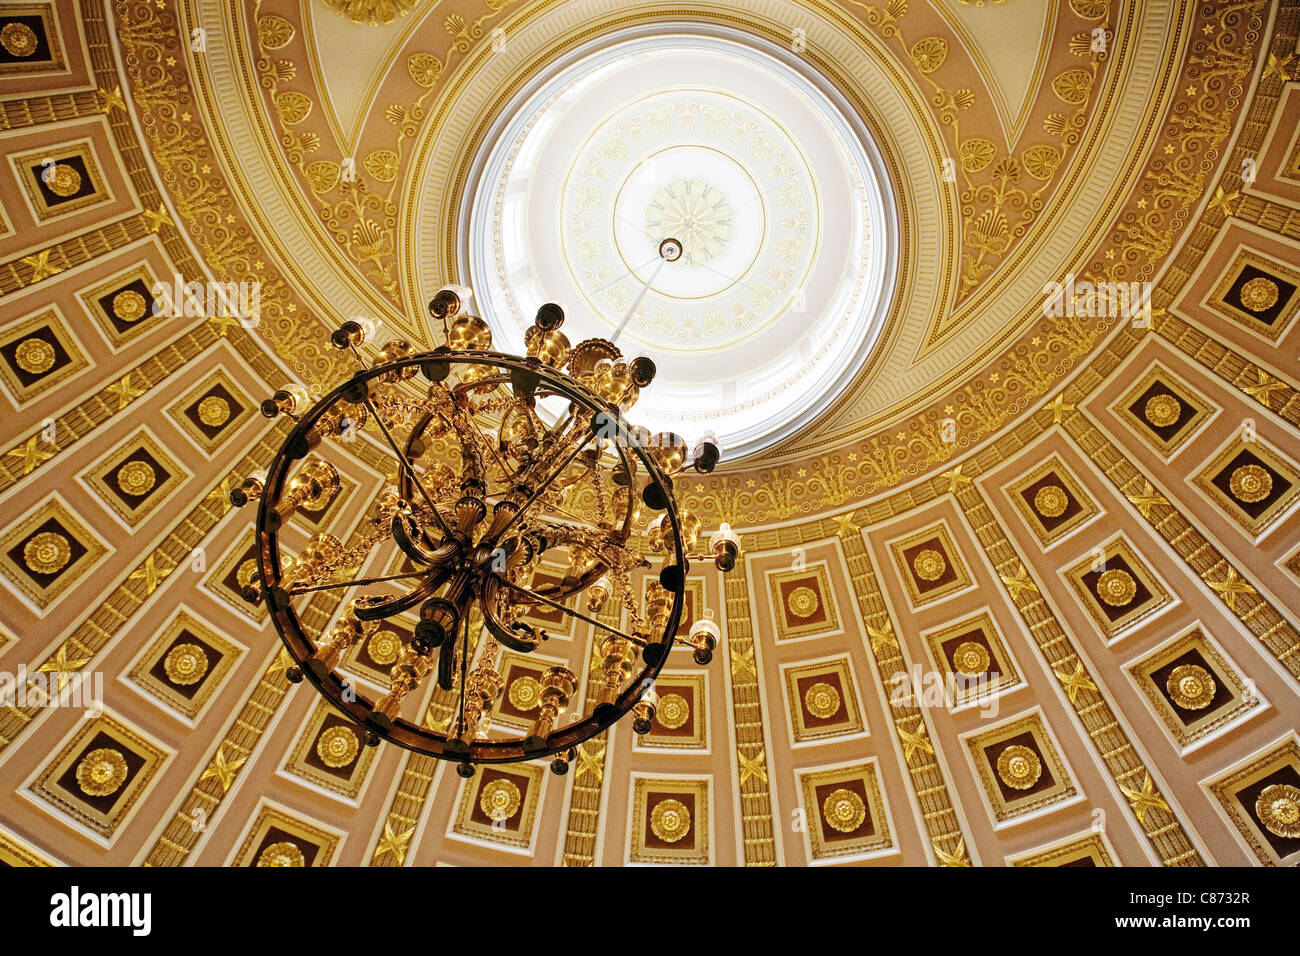 The chandelier and roof, National Statuary Hall, the Capitol building, Washington DC USA - Stock Image